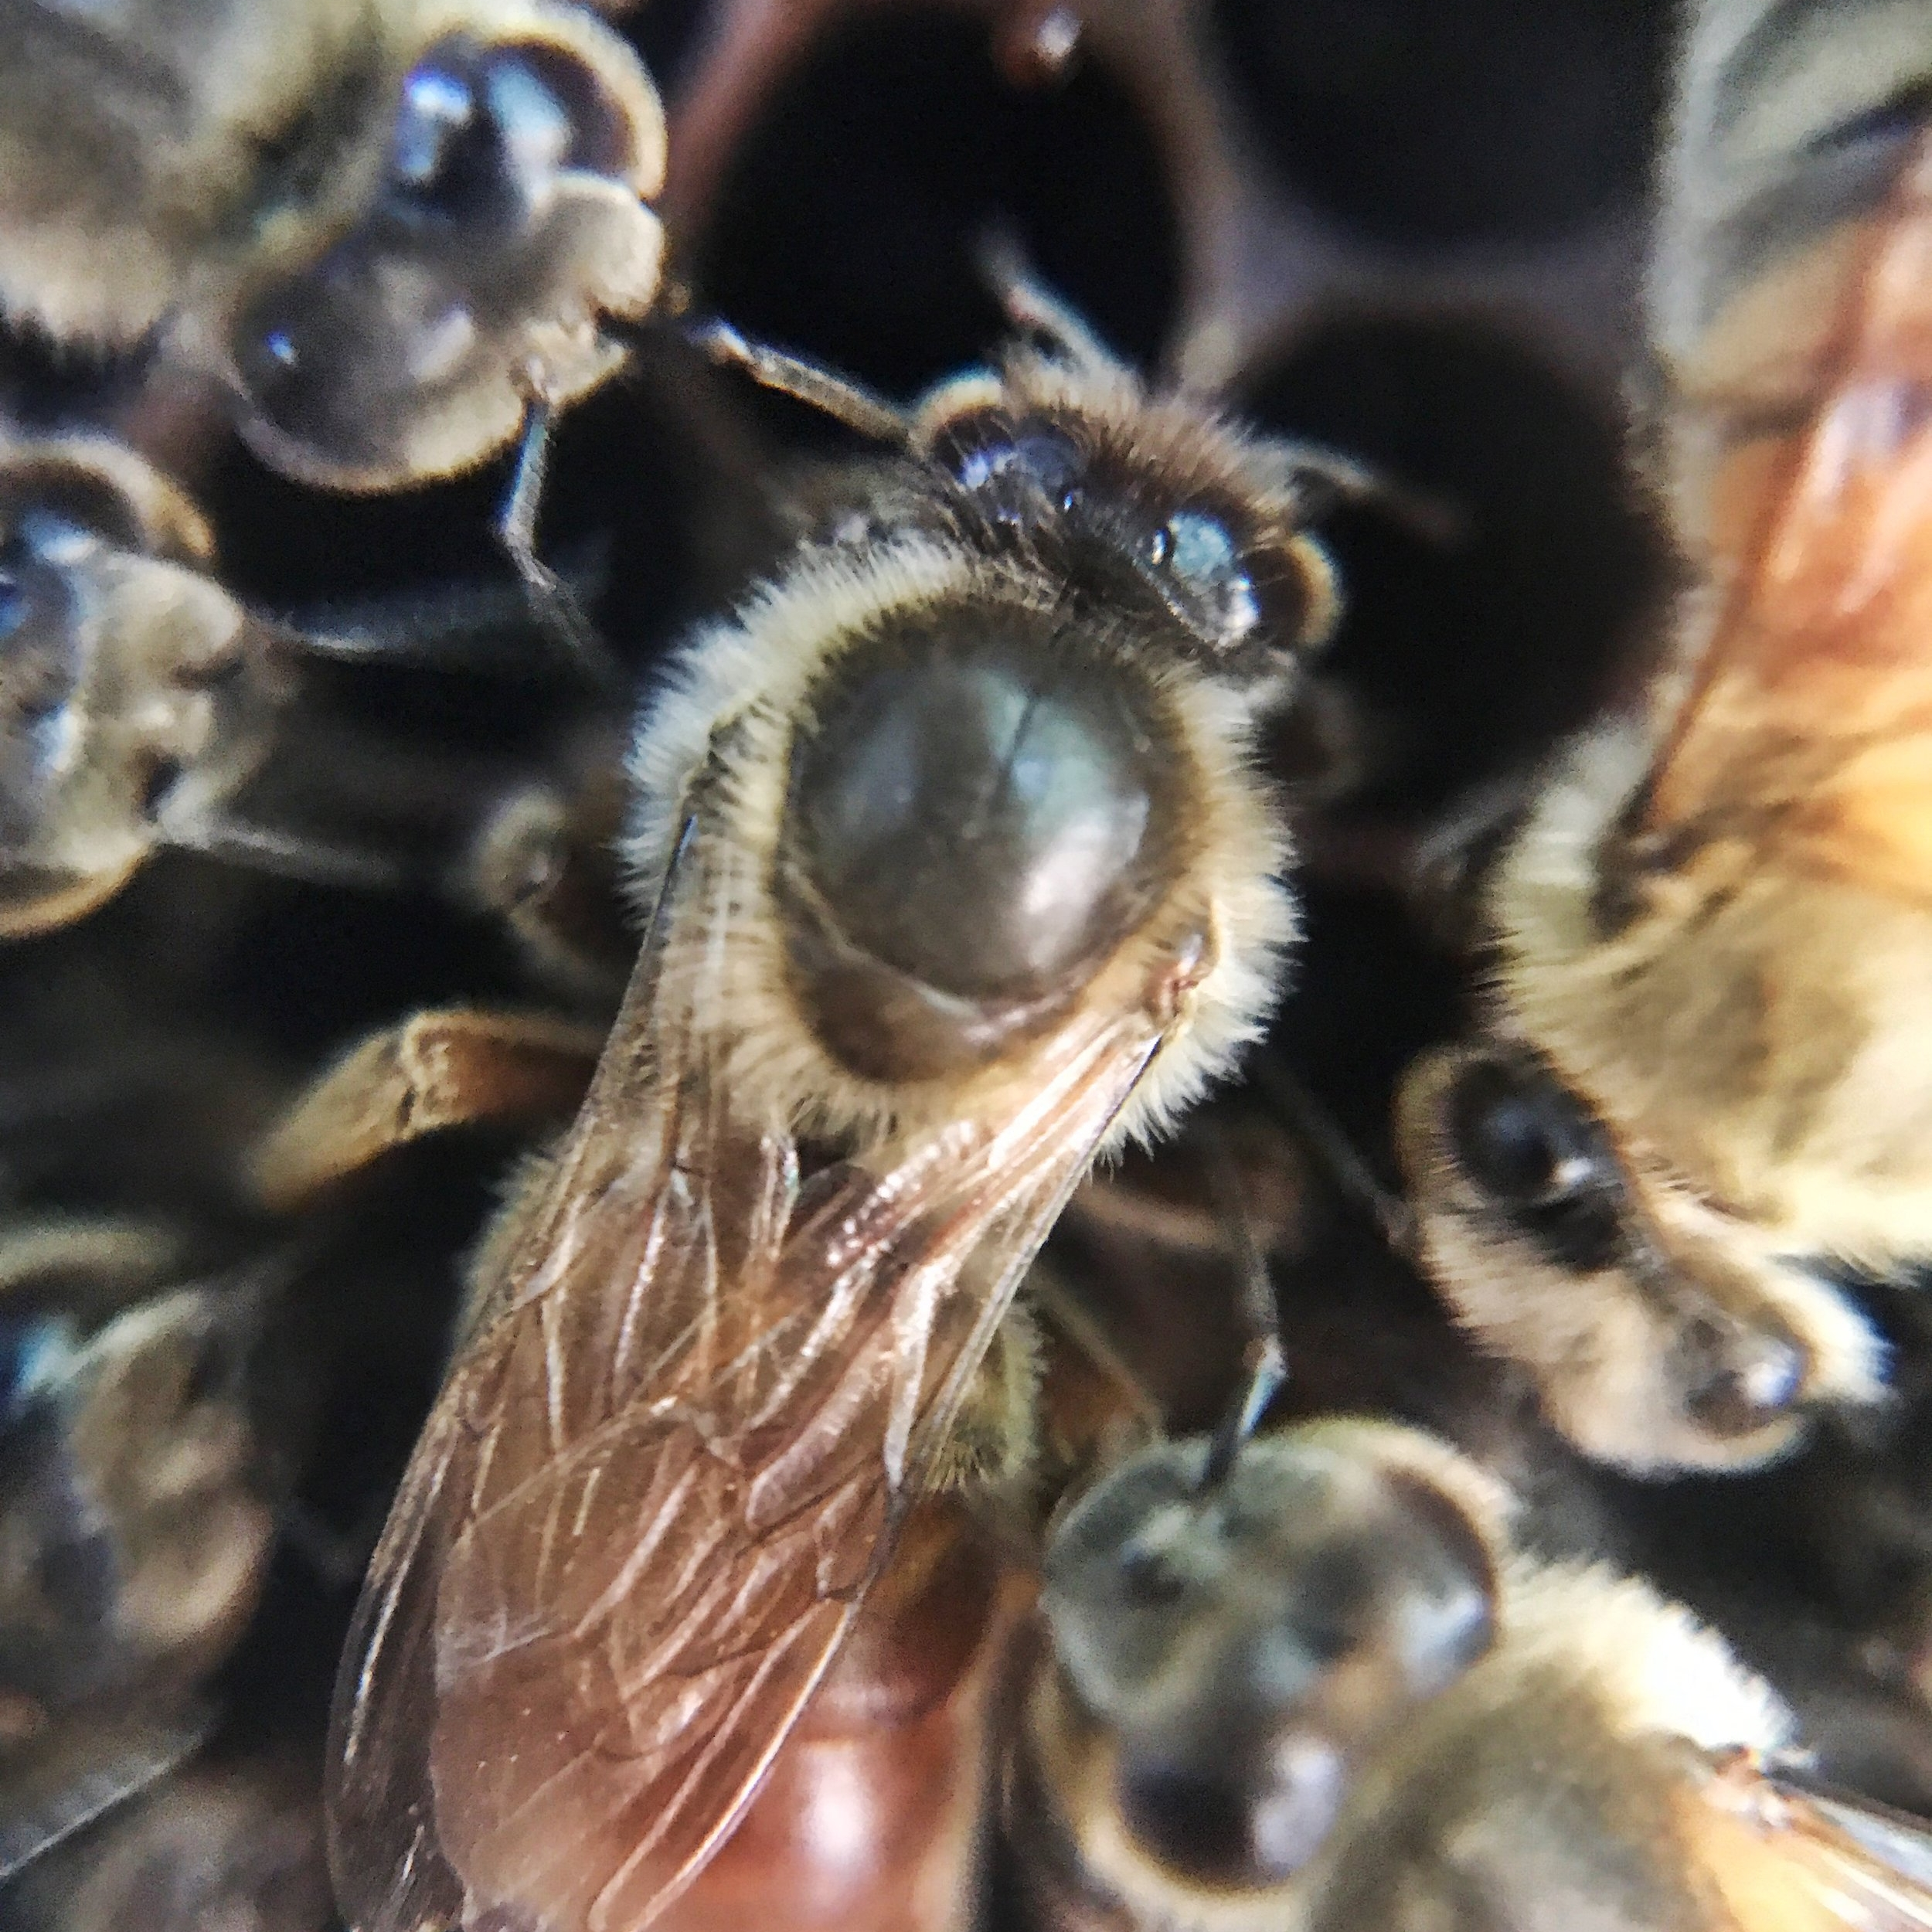 HoneyBee tree - Peer into the world of bees! Learn about the job of each bee and all the work that goes into maintaining a hive. You'll even be able to see the queen surrounded by her court.